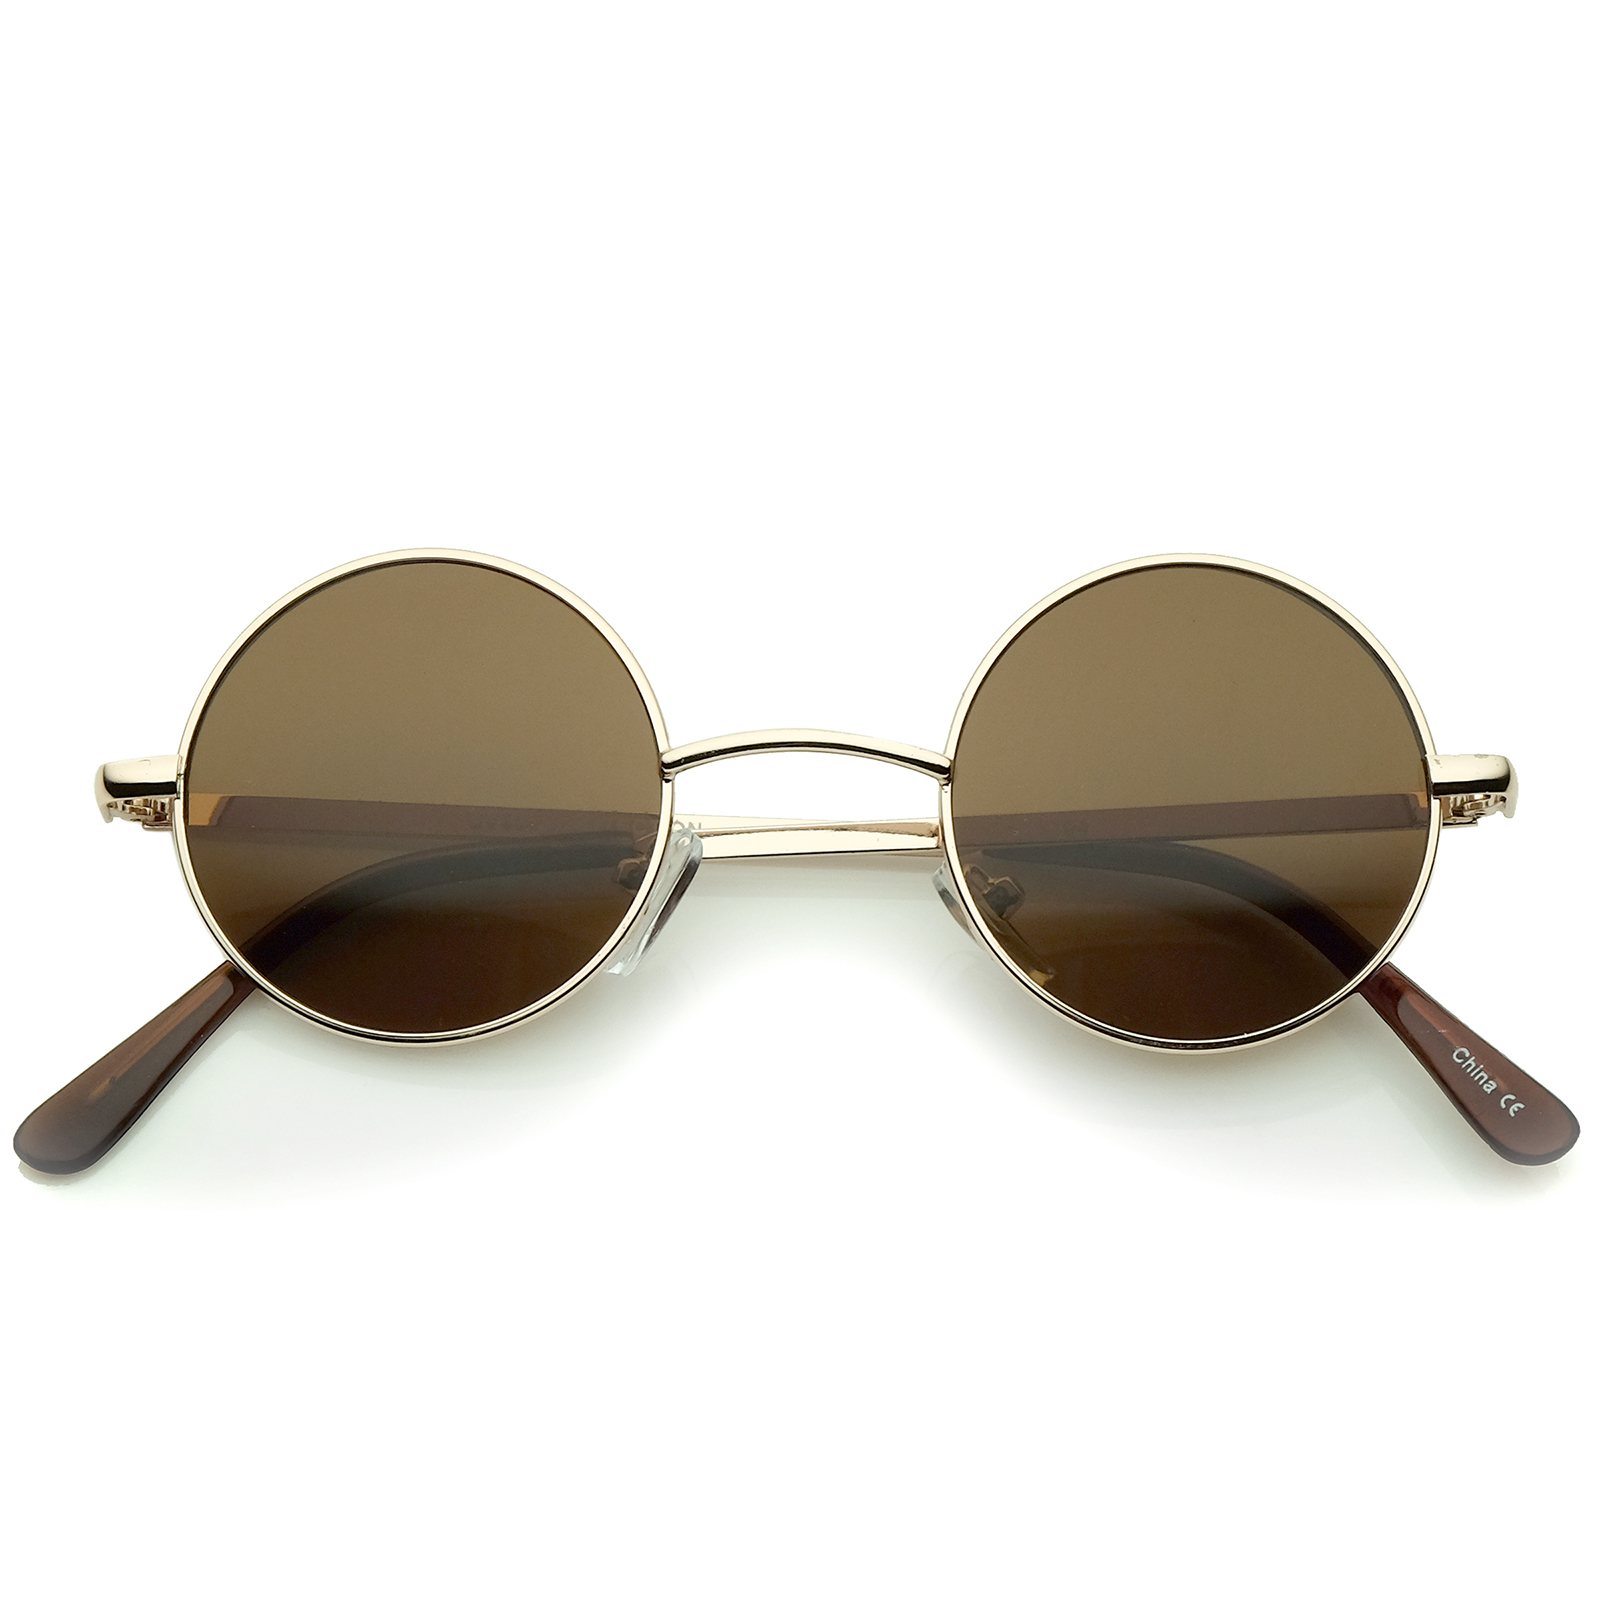 Sunglass Hut Round Sunglasses